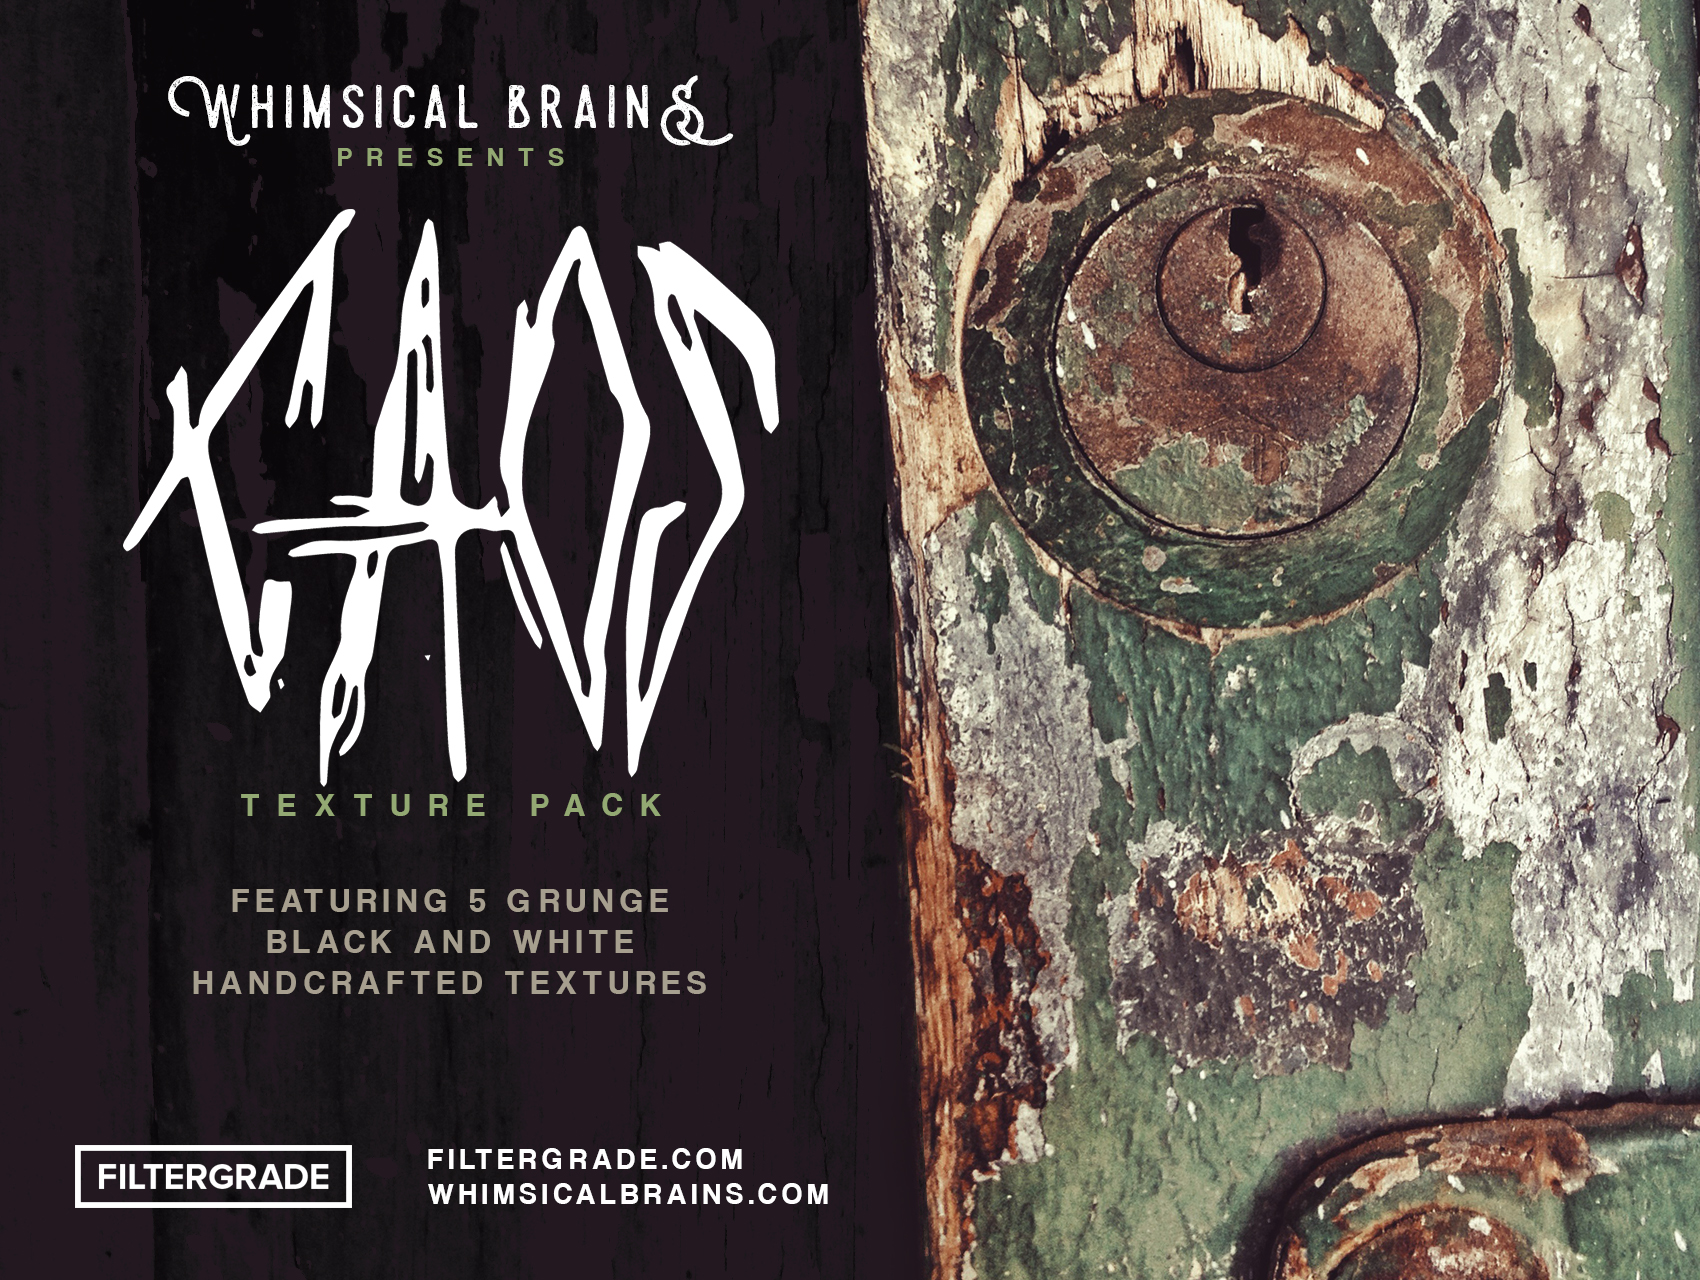 Free Grunge Textures from Adriano Clemense of Whimsical Brains